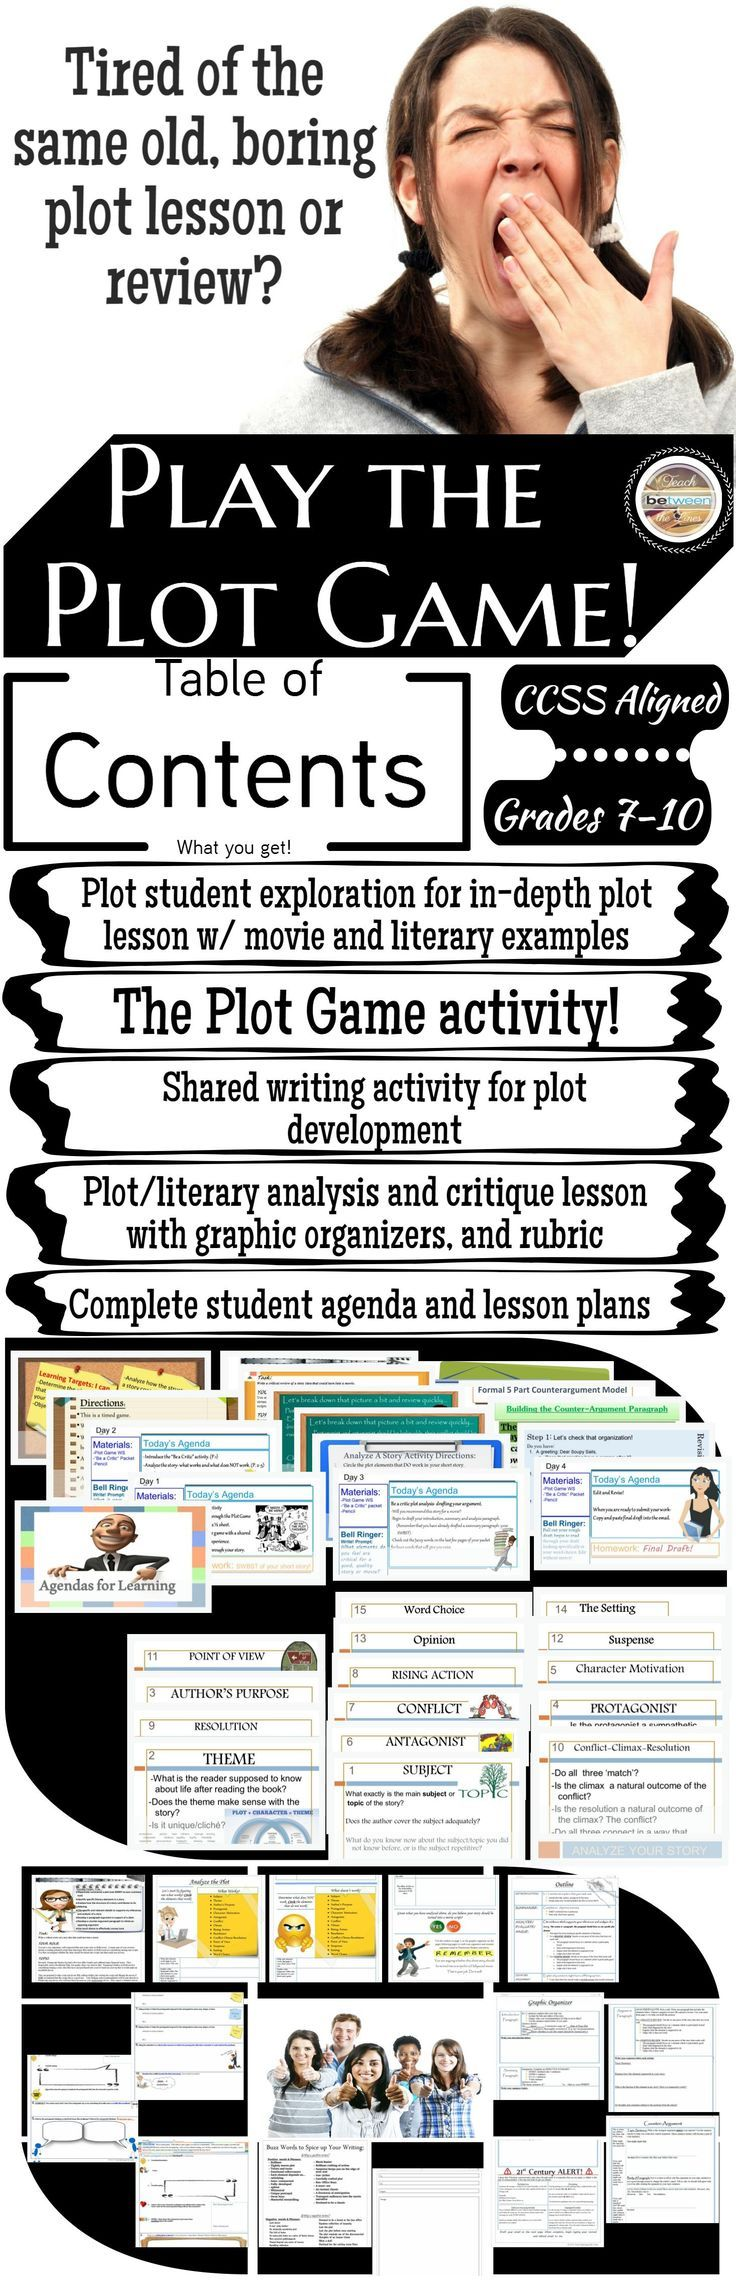 The plot/literary elements game activity fosters a shared writing experience for students in the creation of a fun, creative, and often hilarious story.   Students then analyze this story for its flawed plot elements based on their understanding of litera